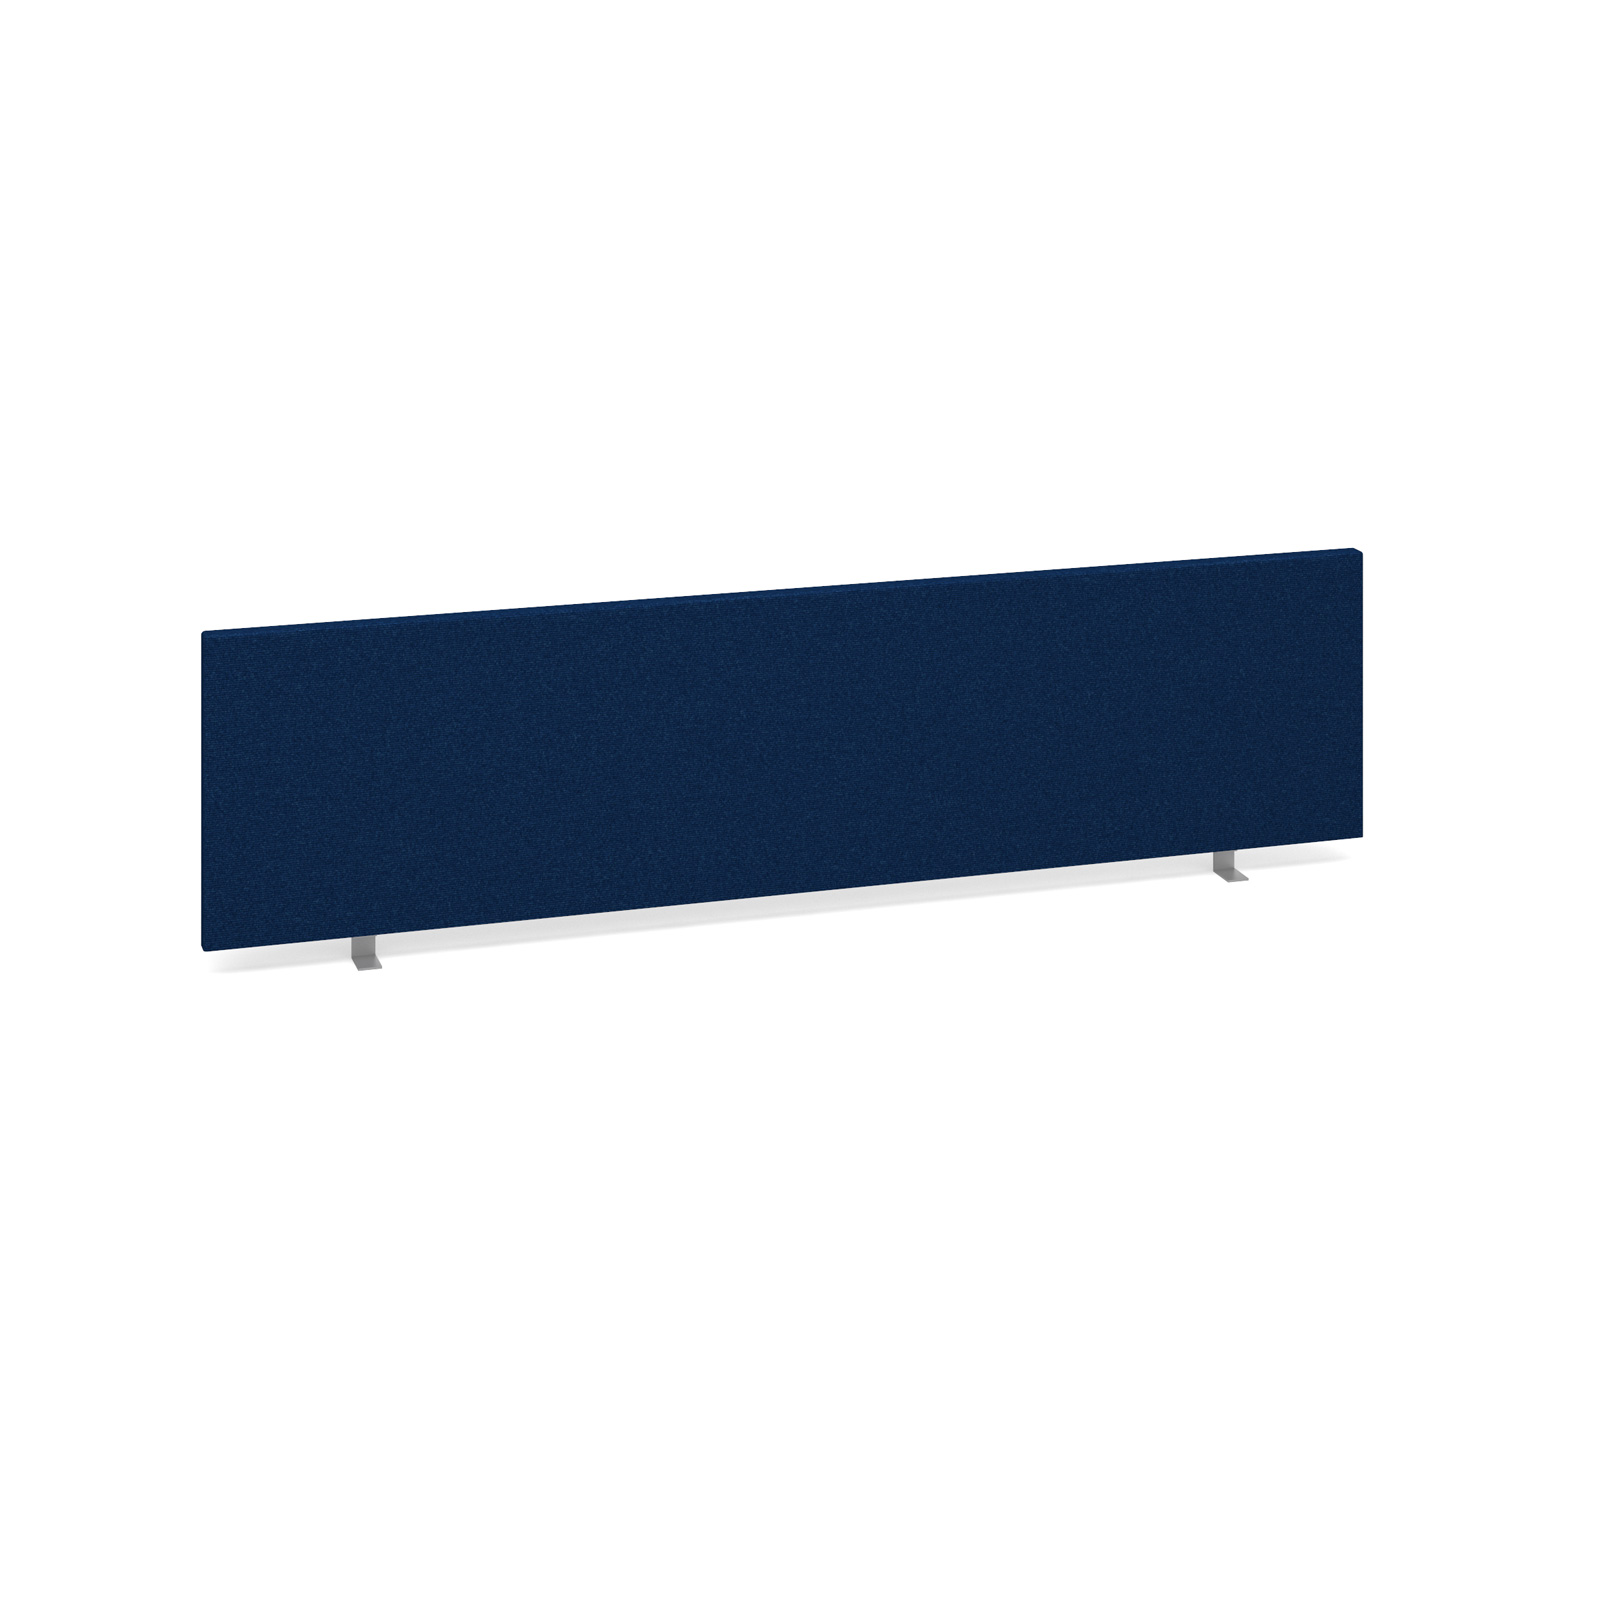 Straight Tops Straight desktop fabric screen 1600mm x 400mm - blue